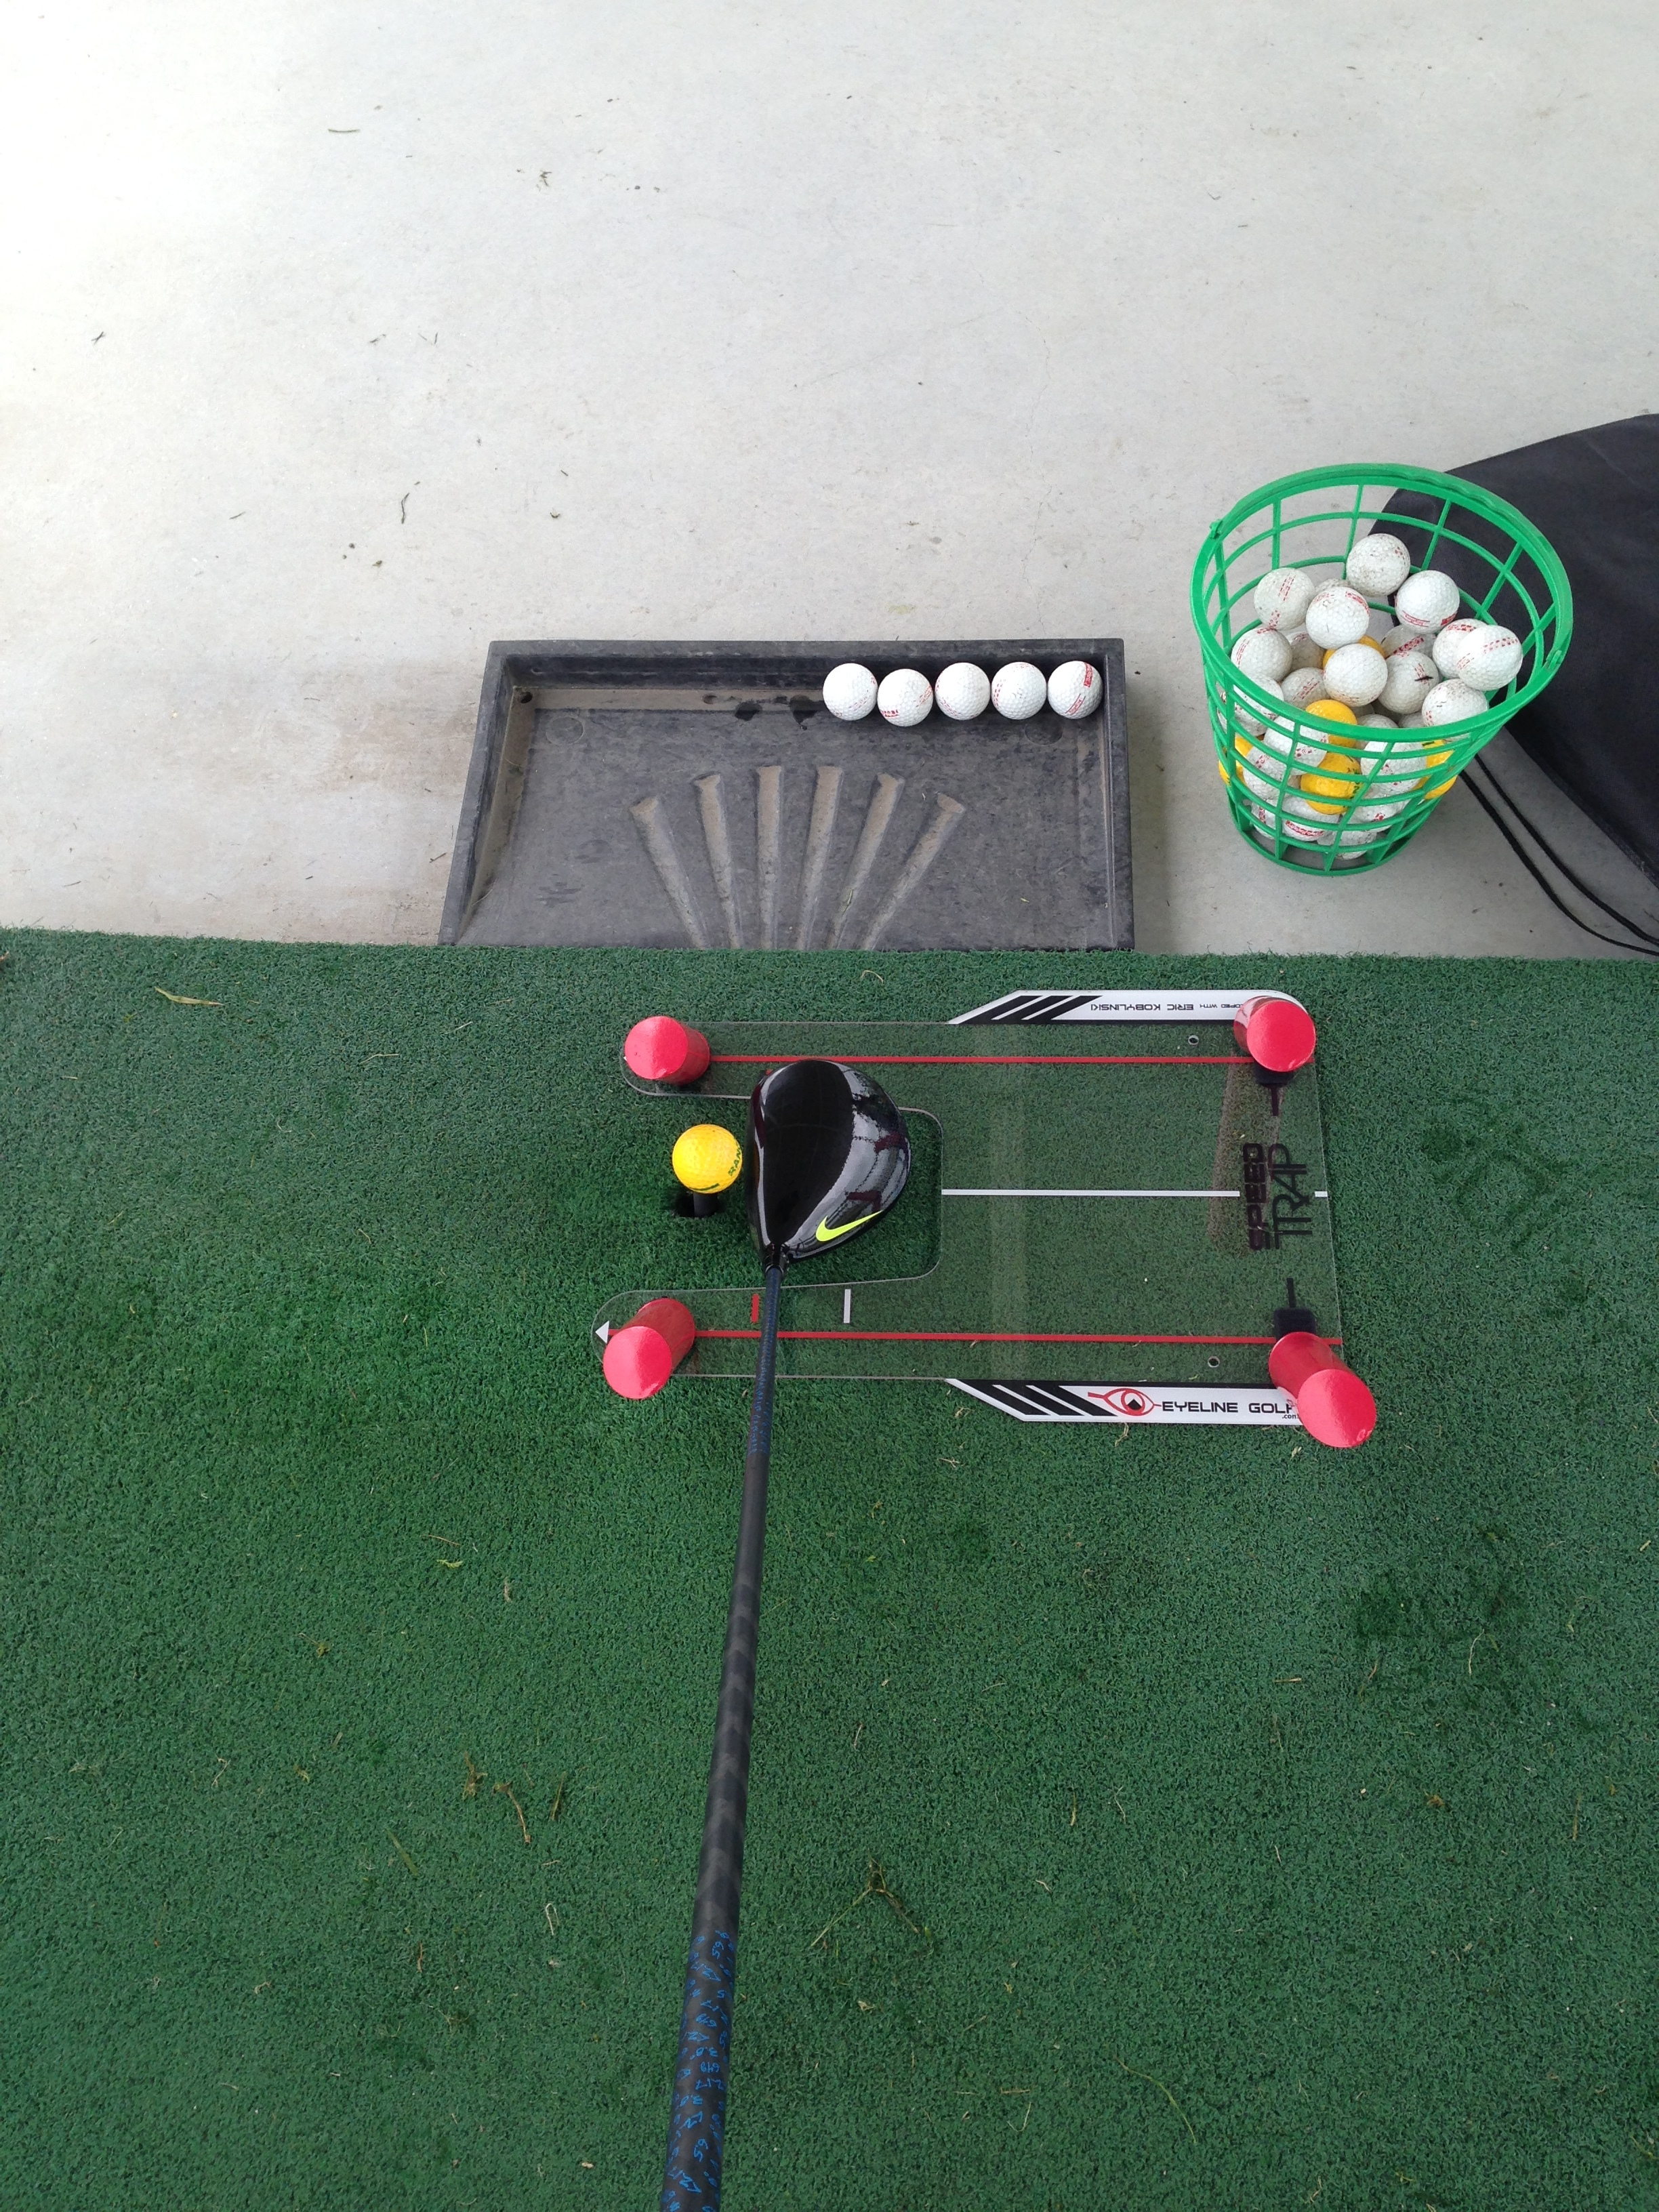 eyeline golf speed trap review golf by josh hirst